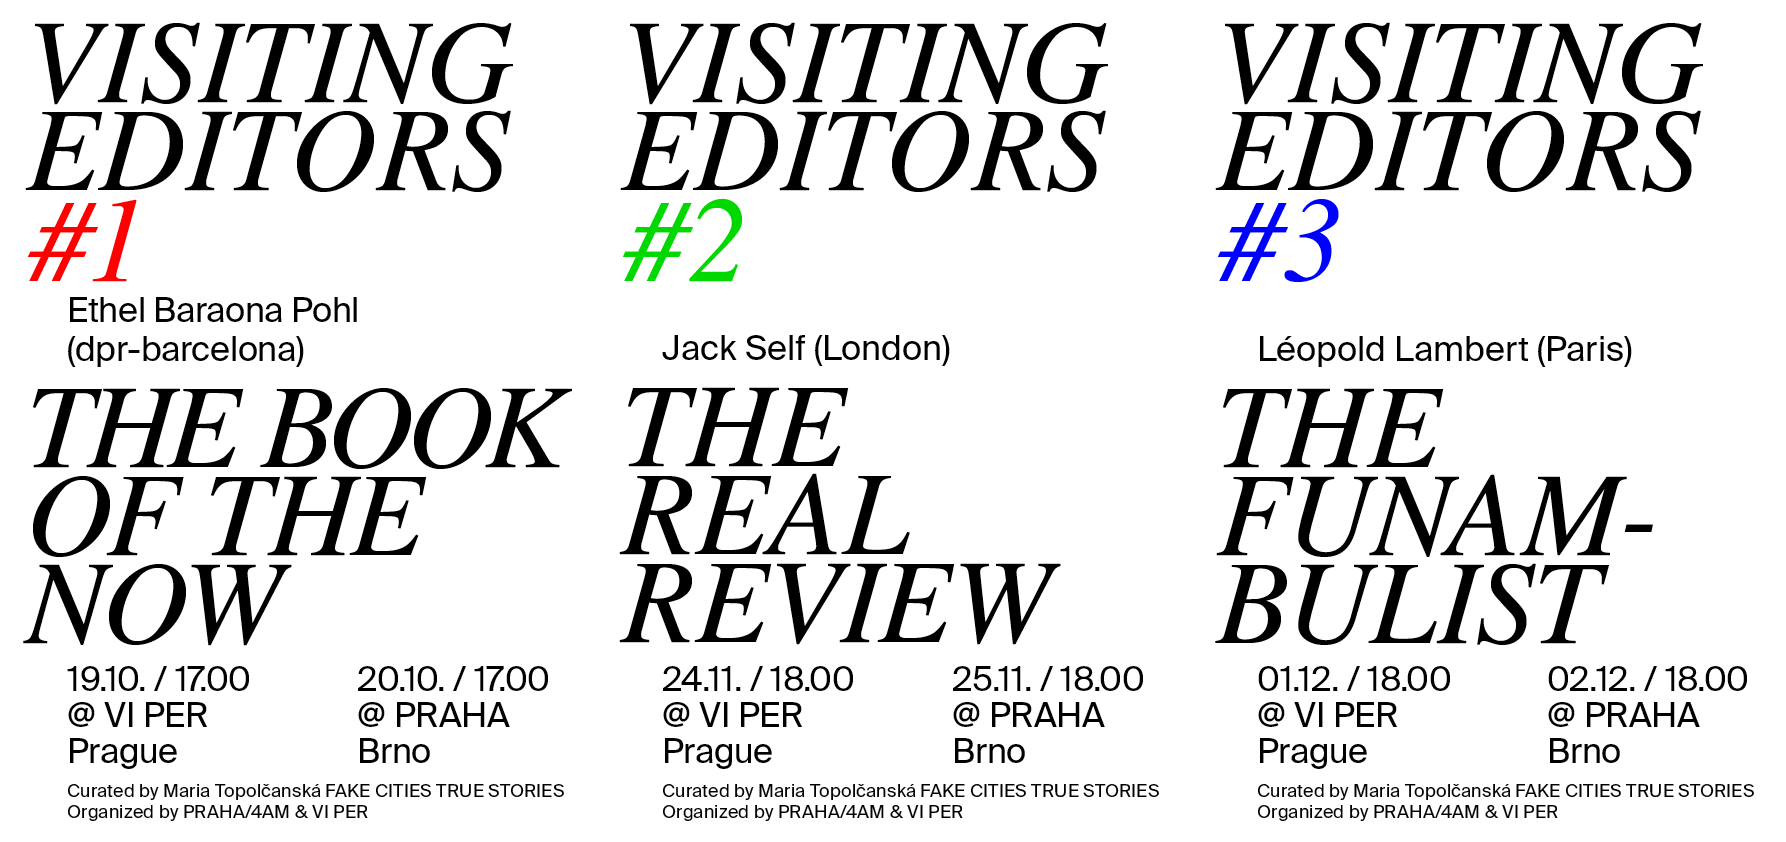 VISITING EDITORS *NEXT #3 – LÉOPOLD LAMBERT 2.12 / 6 p.m.